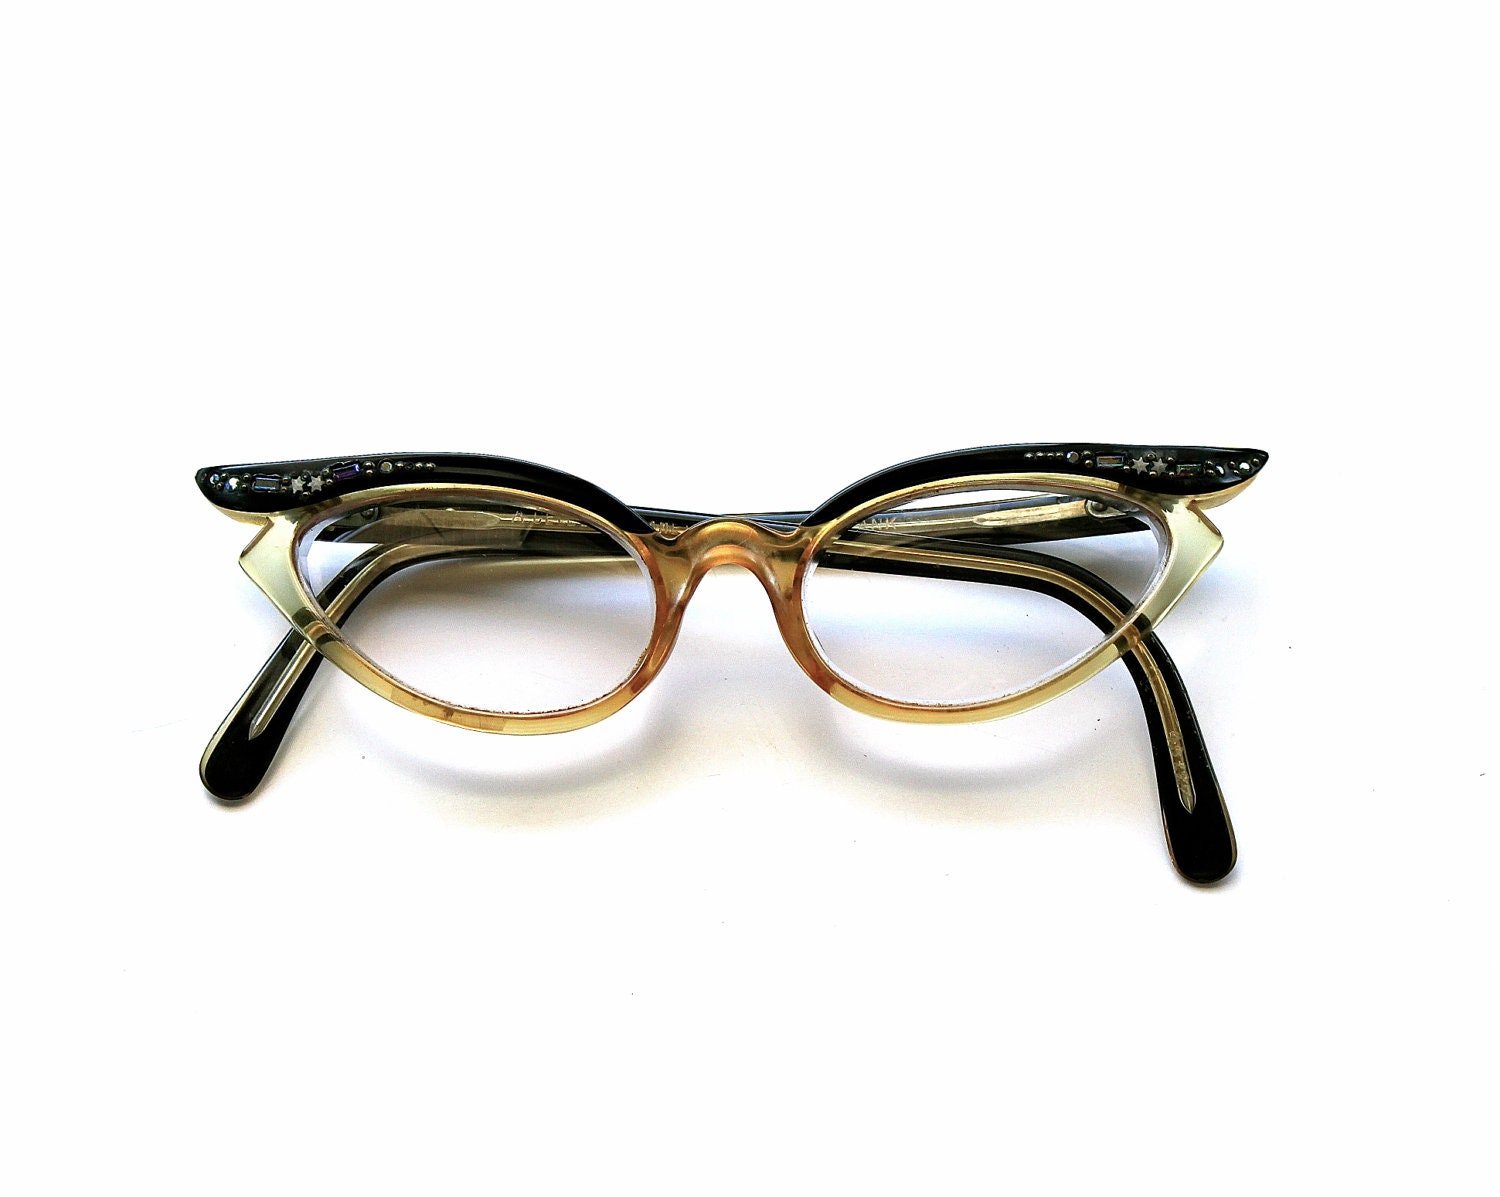 Eyeglass Frames Made In France : Catty Vintage Swank Cat Eye Glasses Made in France by becaruns